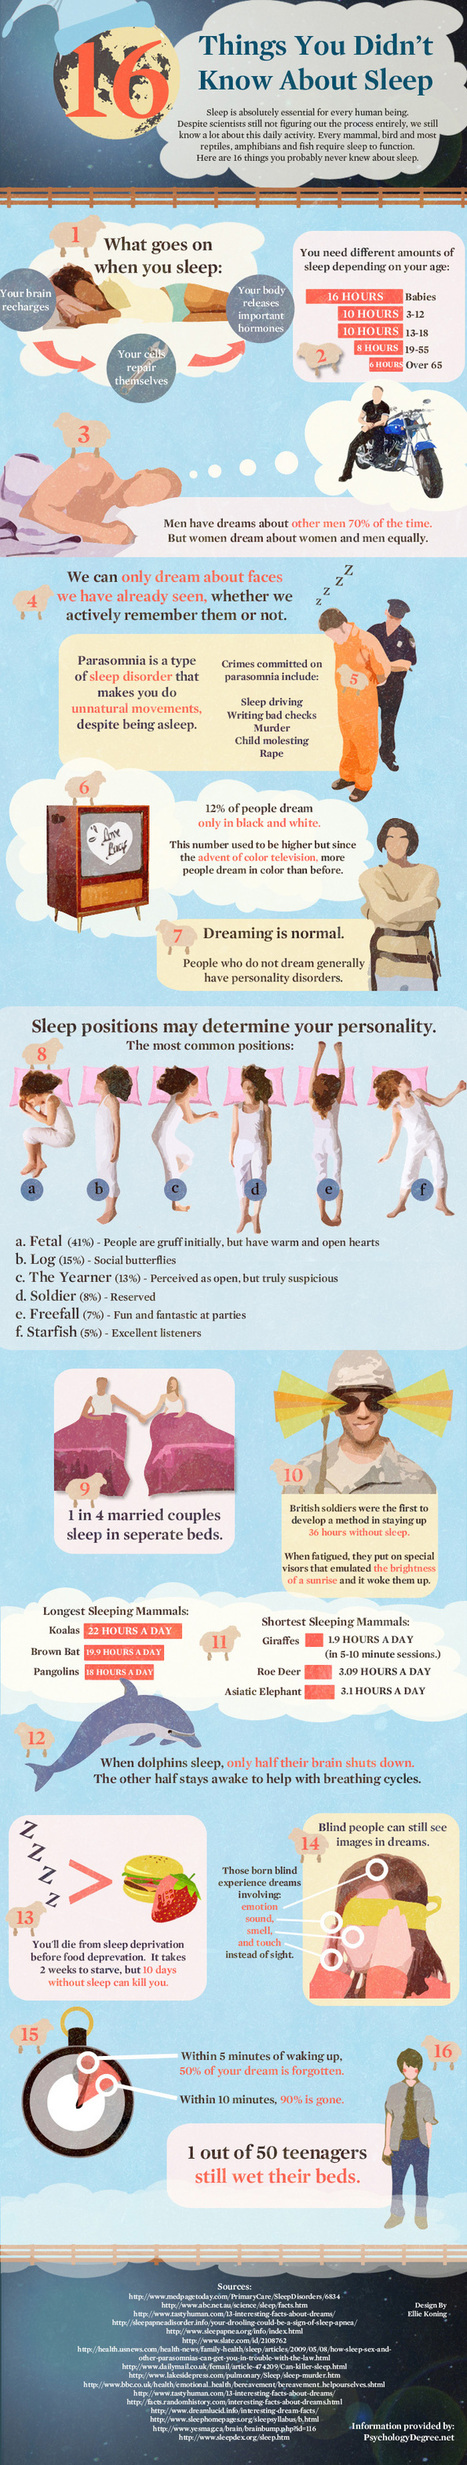 16 things you didn't know about sleep | Speculations and Trends | Scoop.it